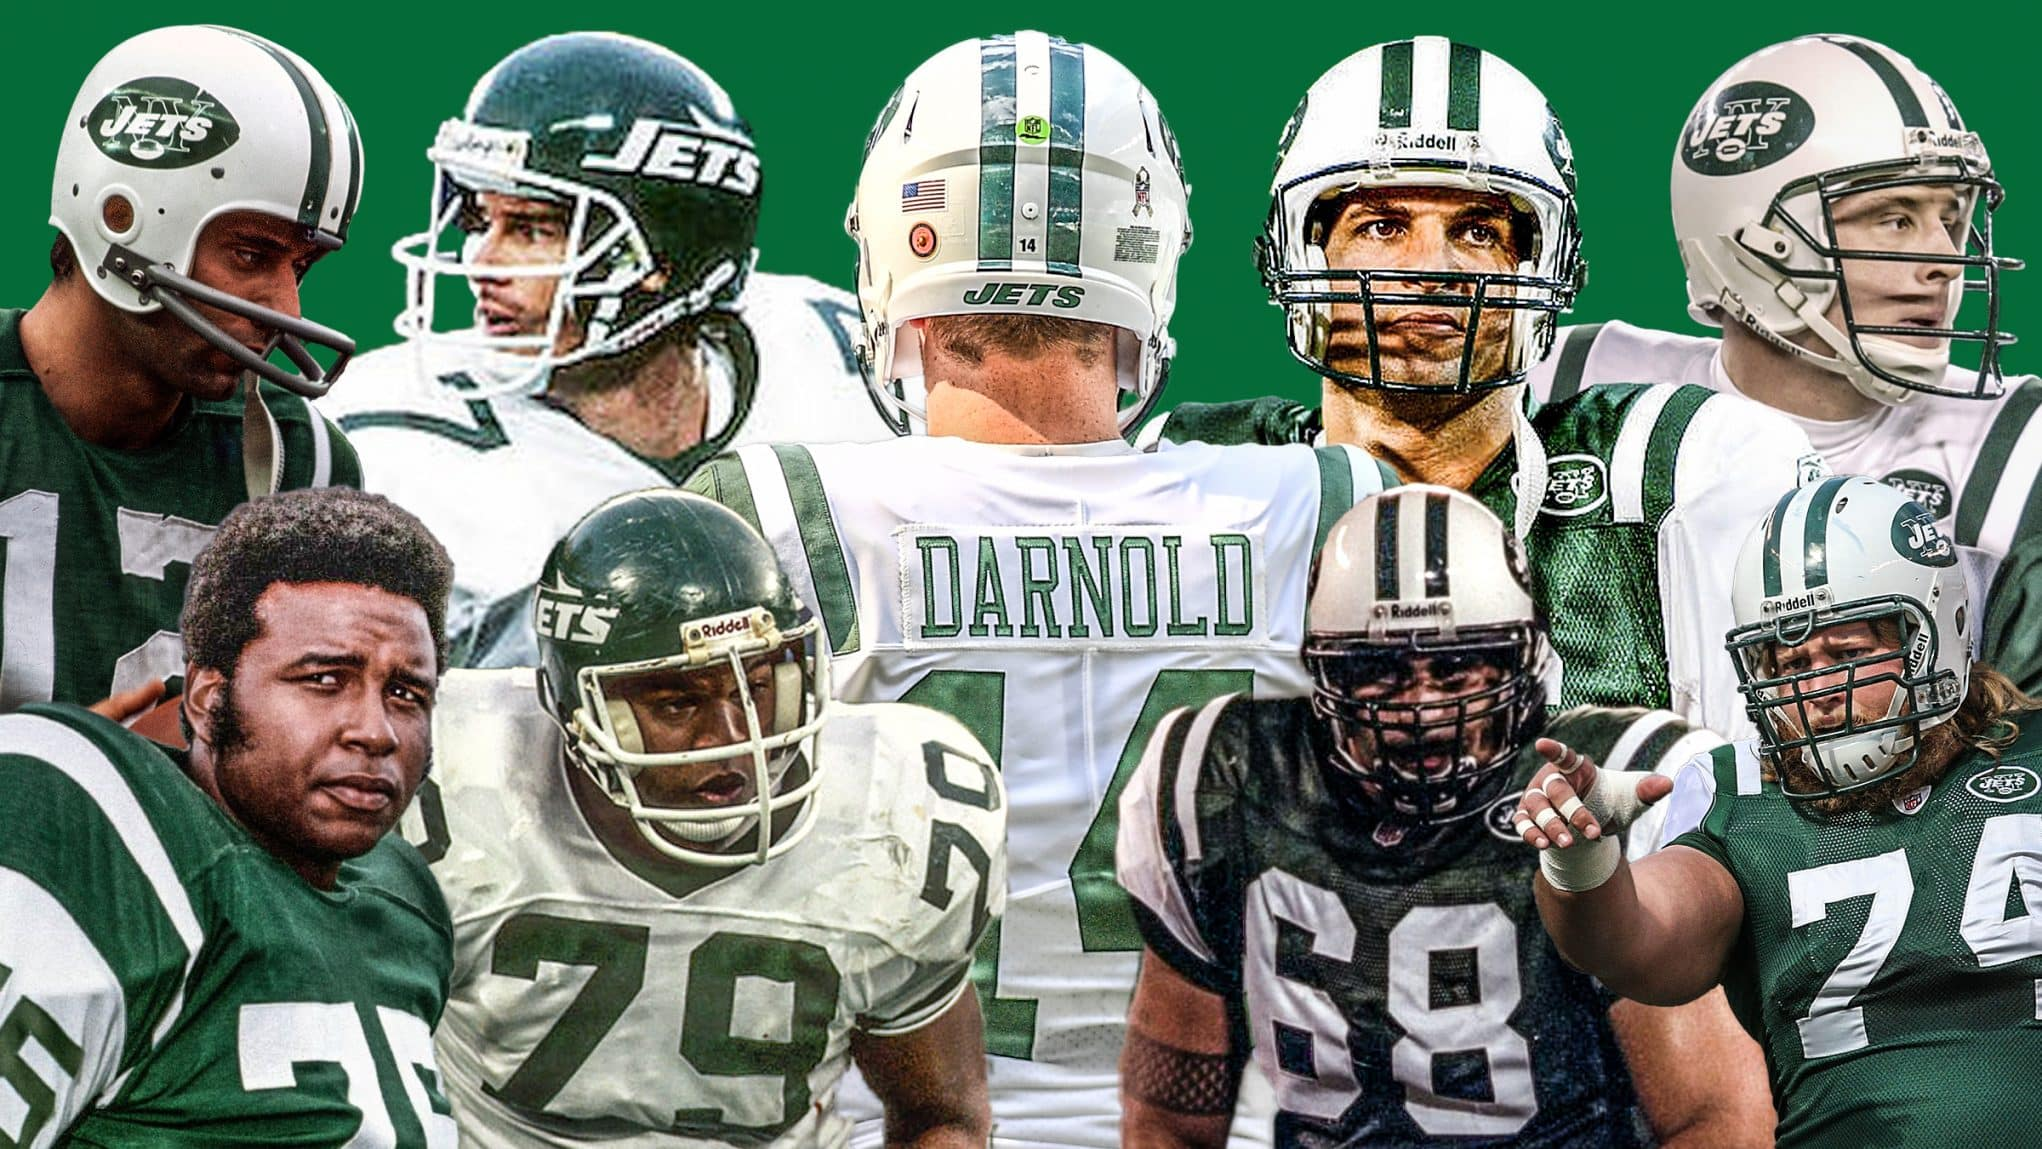 bac8507ad01 The New York Jets long-lost yet integral offensive line narrative